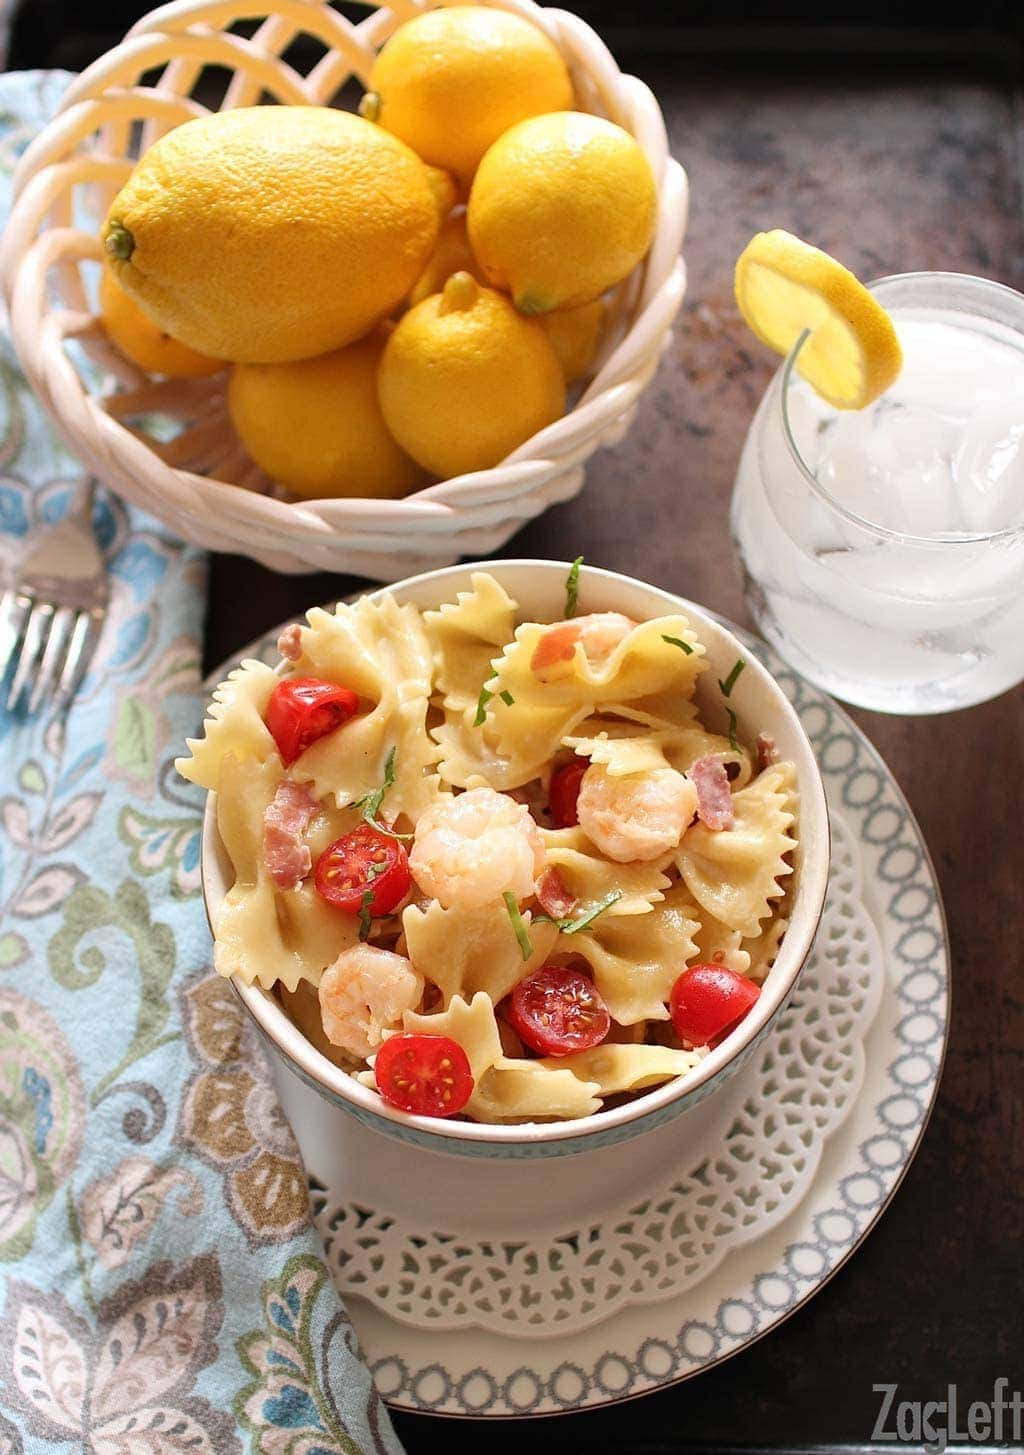 An overhead view of shrimp and prosciutto pasta in a small bowl plated on a metal tray with a small bowl of lemons and a glass of ice water